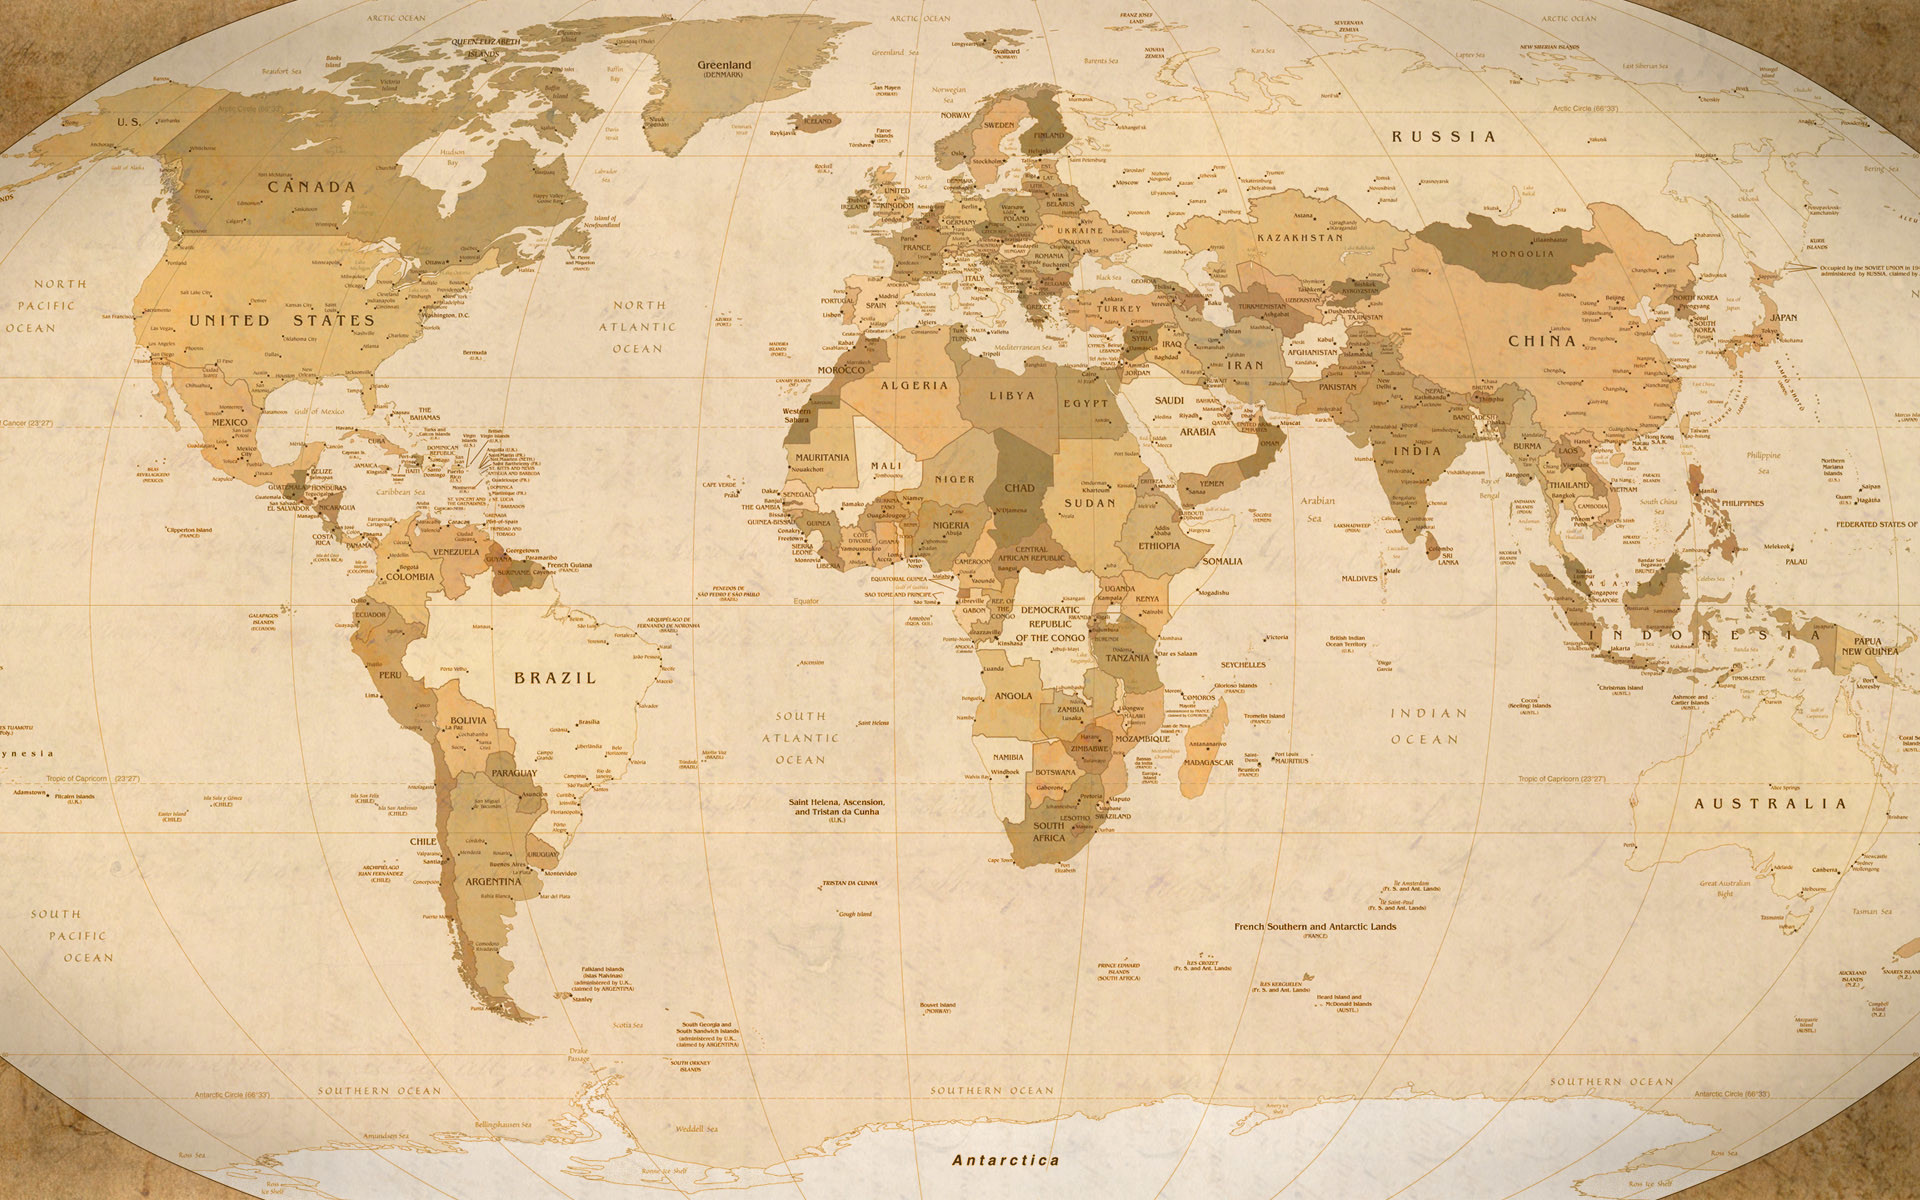 World map computer wallpaper 62 images 1920x1200 download typographic world map night hd wallpaper gumiabroncs Choice Image